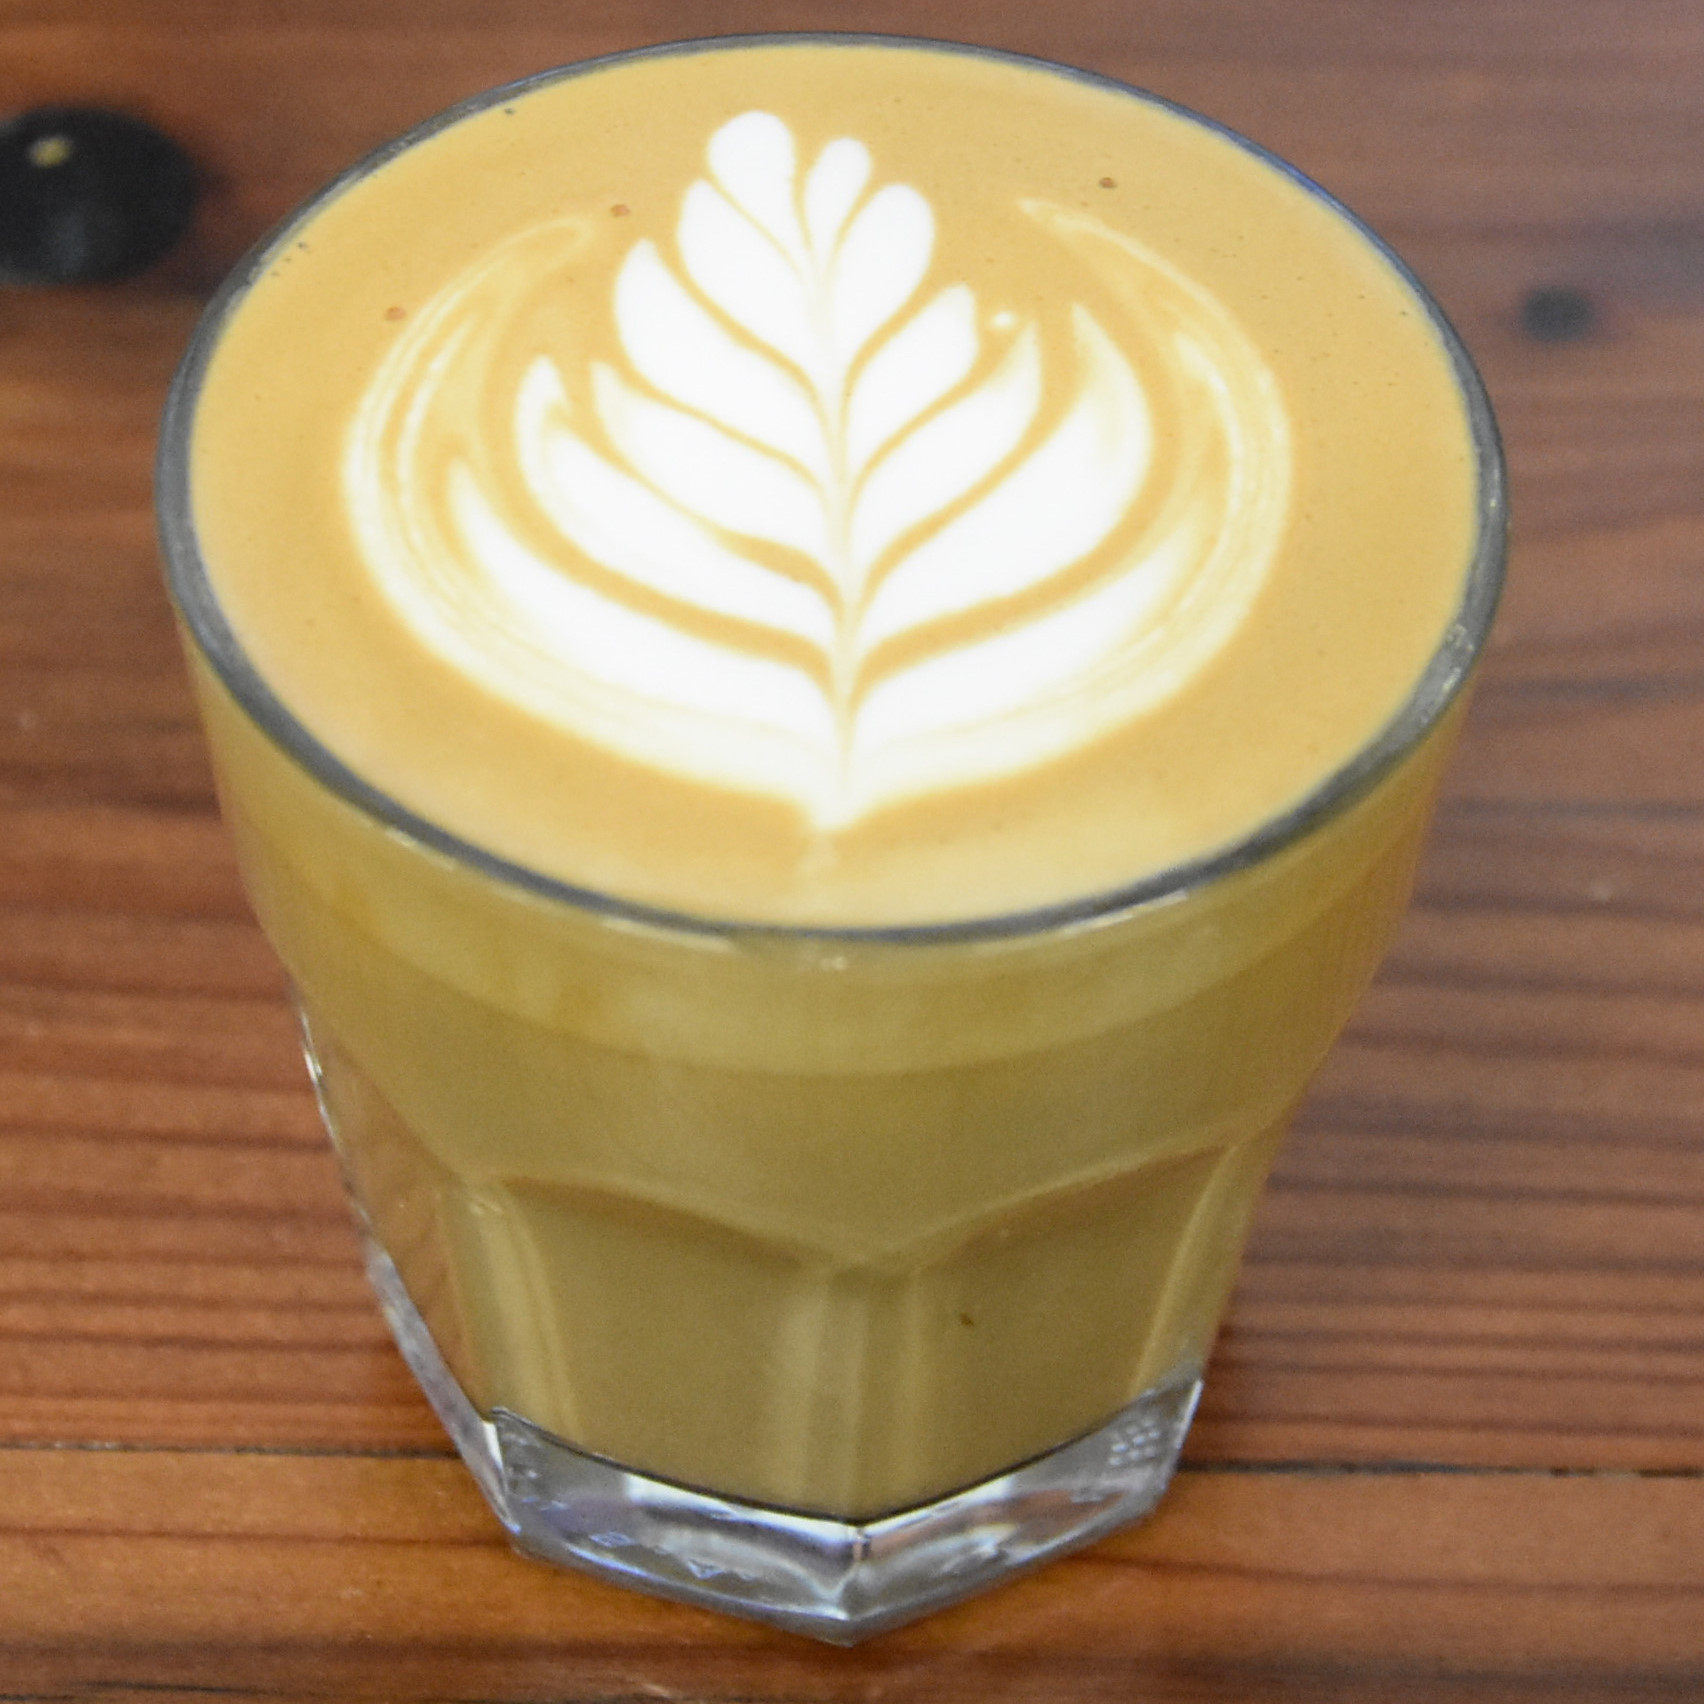 My flat white, in a glass, at the Chromatic Coffee Roastery Cafe in San Jose.